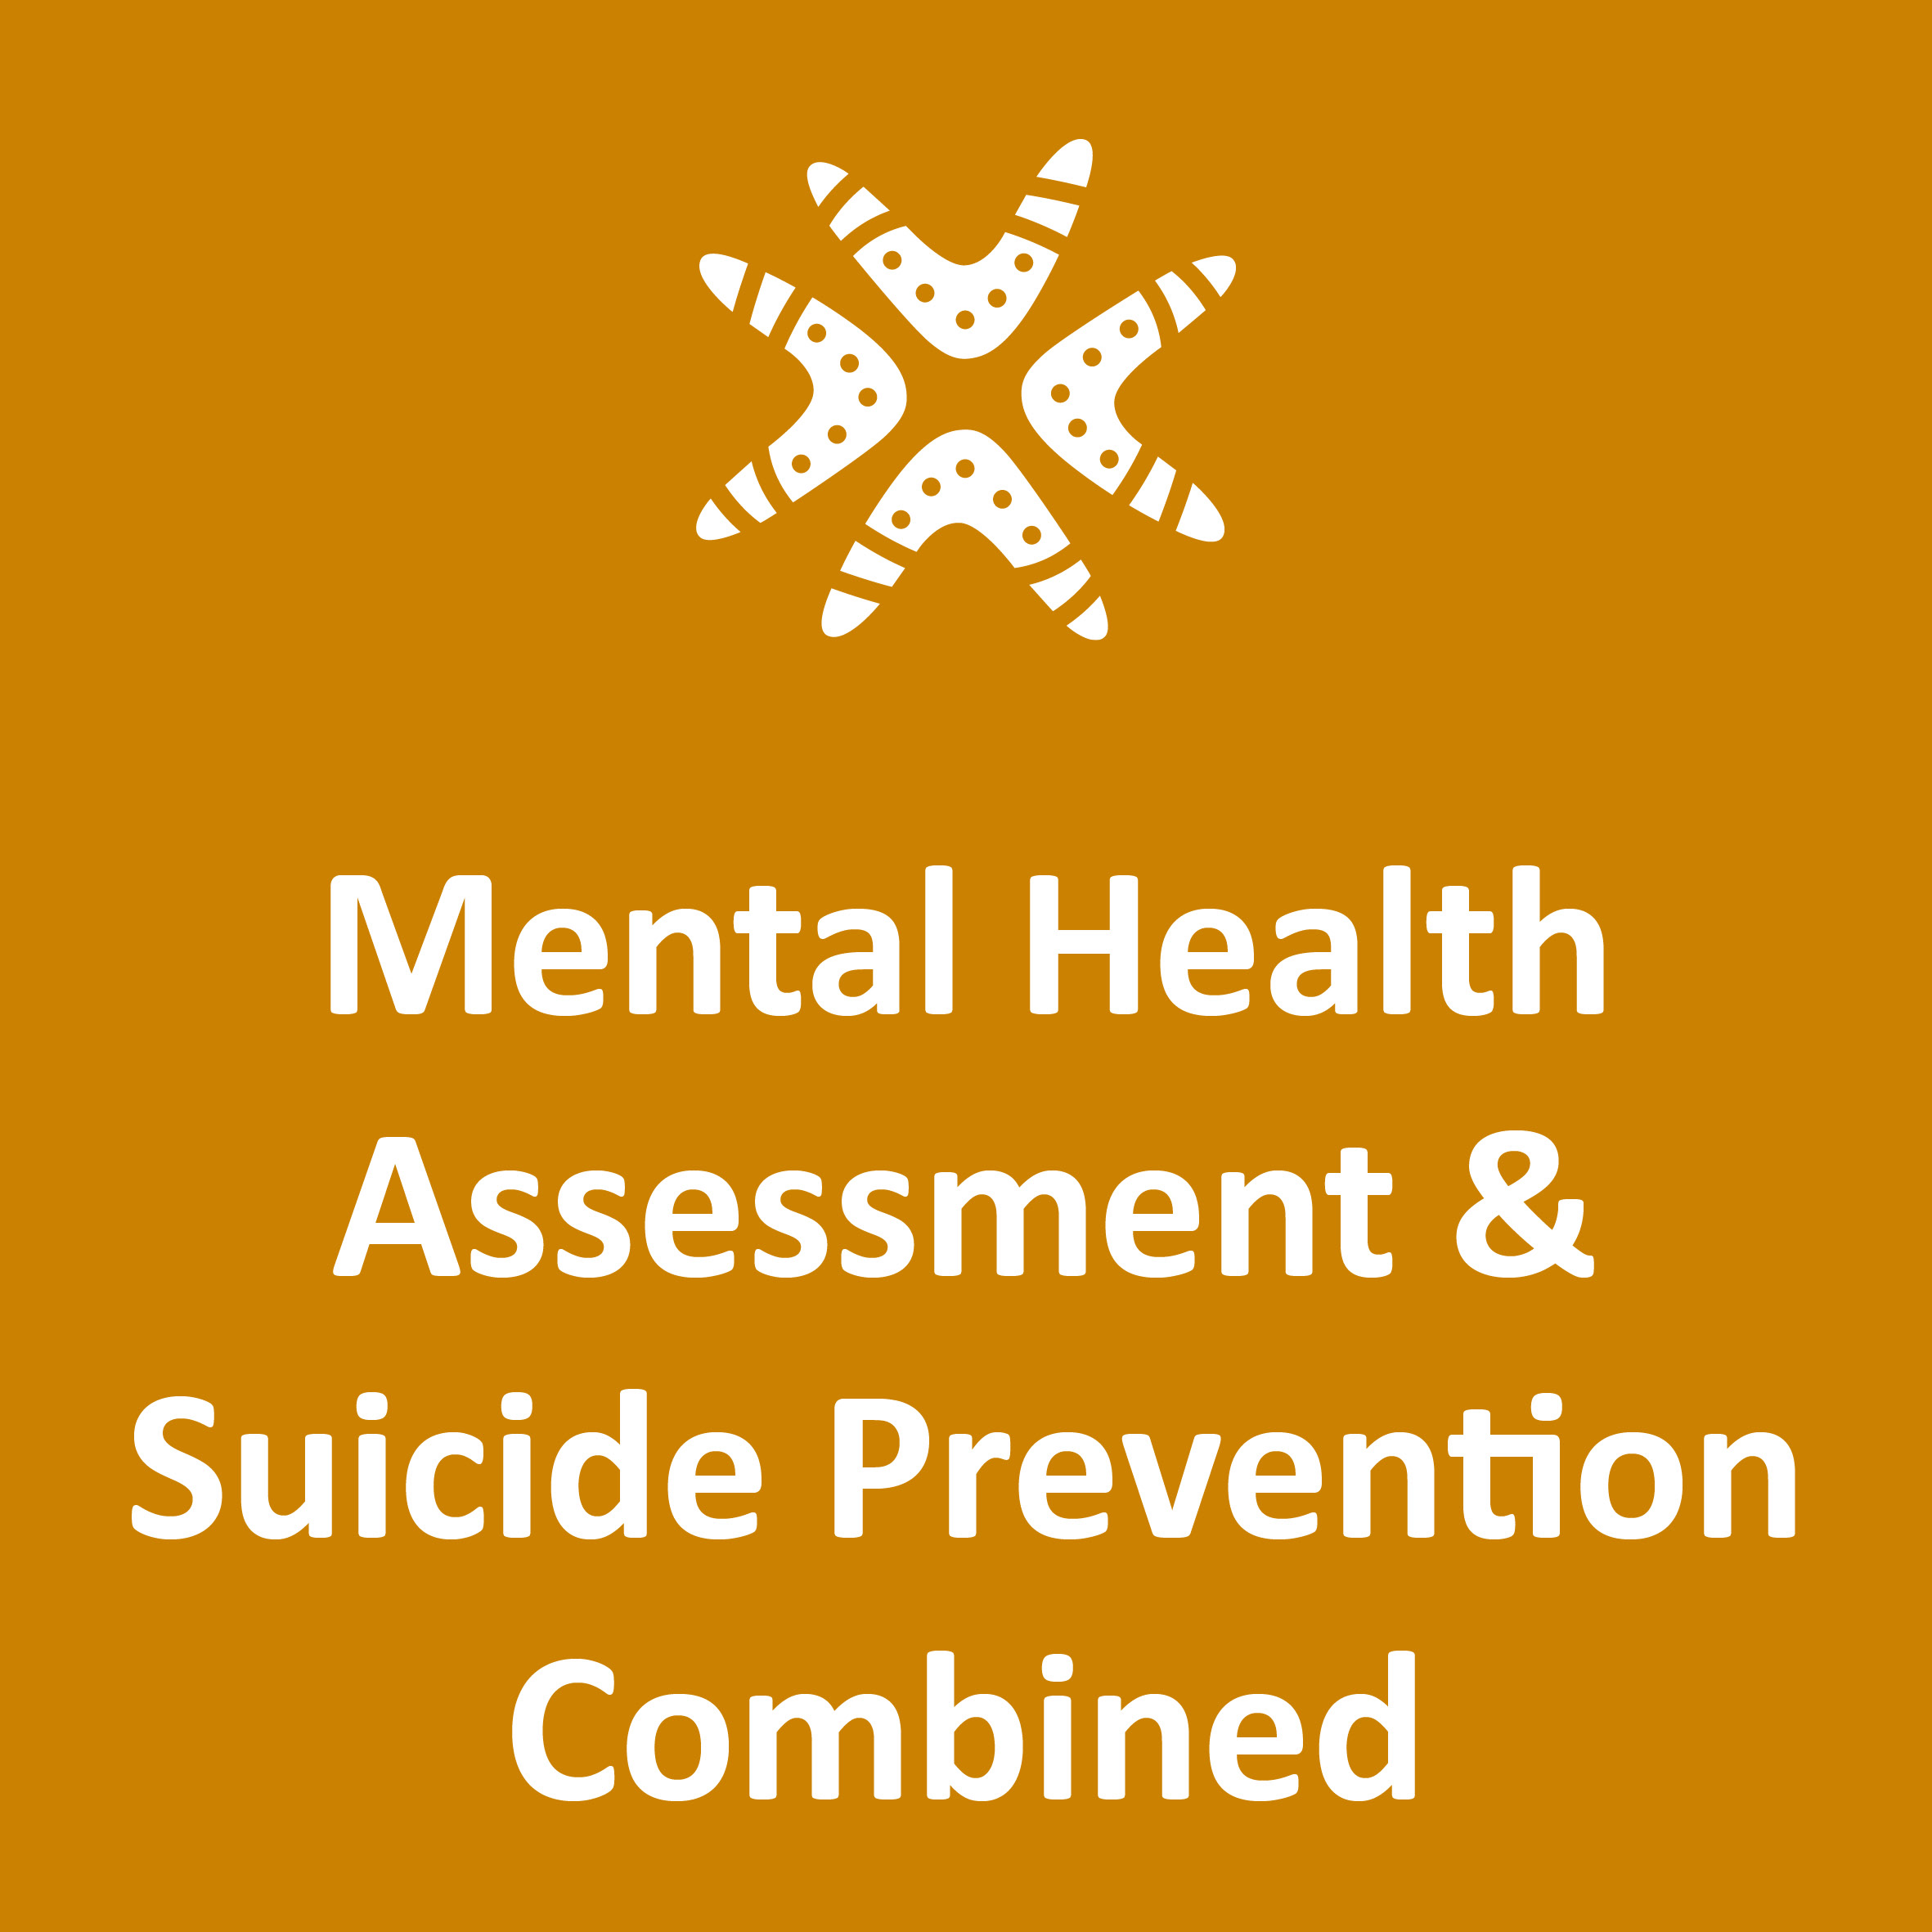 Aboriginal Mental Health Assessment & Suicide Prevention - 3 Day Workshop - Cairns 1-3 August 2018